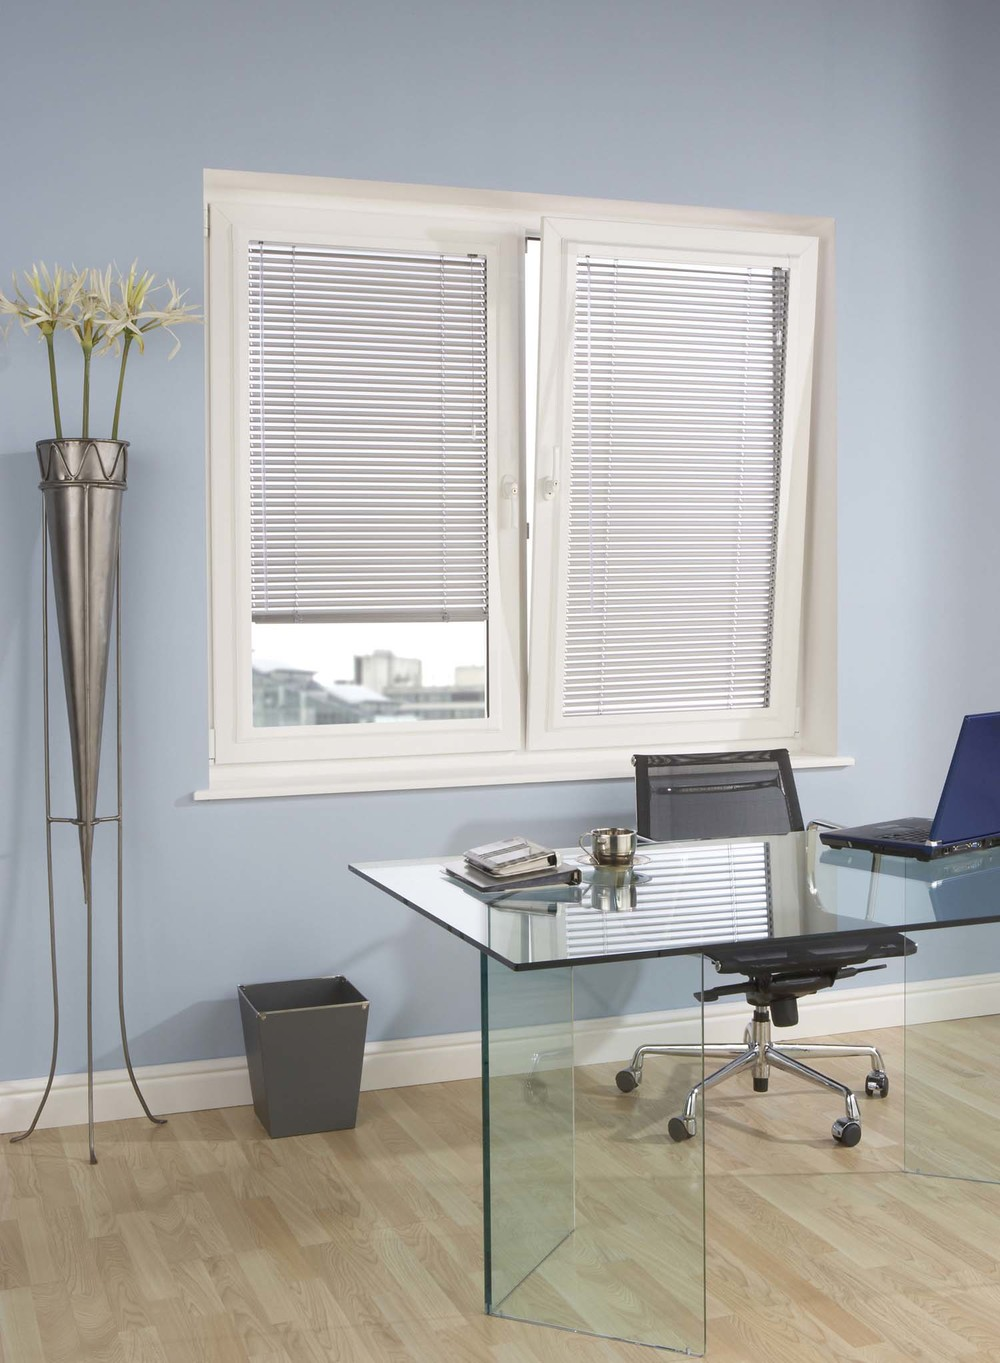 Perfect Fit Blinds Edinburgh Sunset Blinds